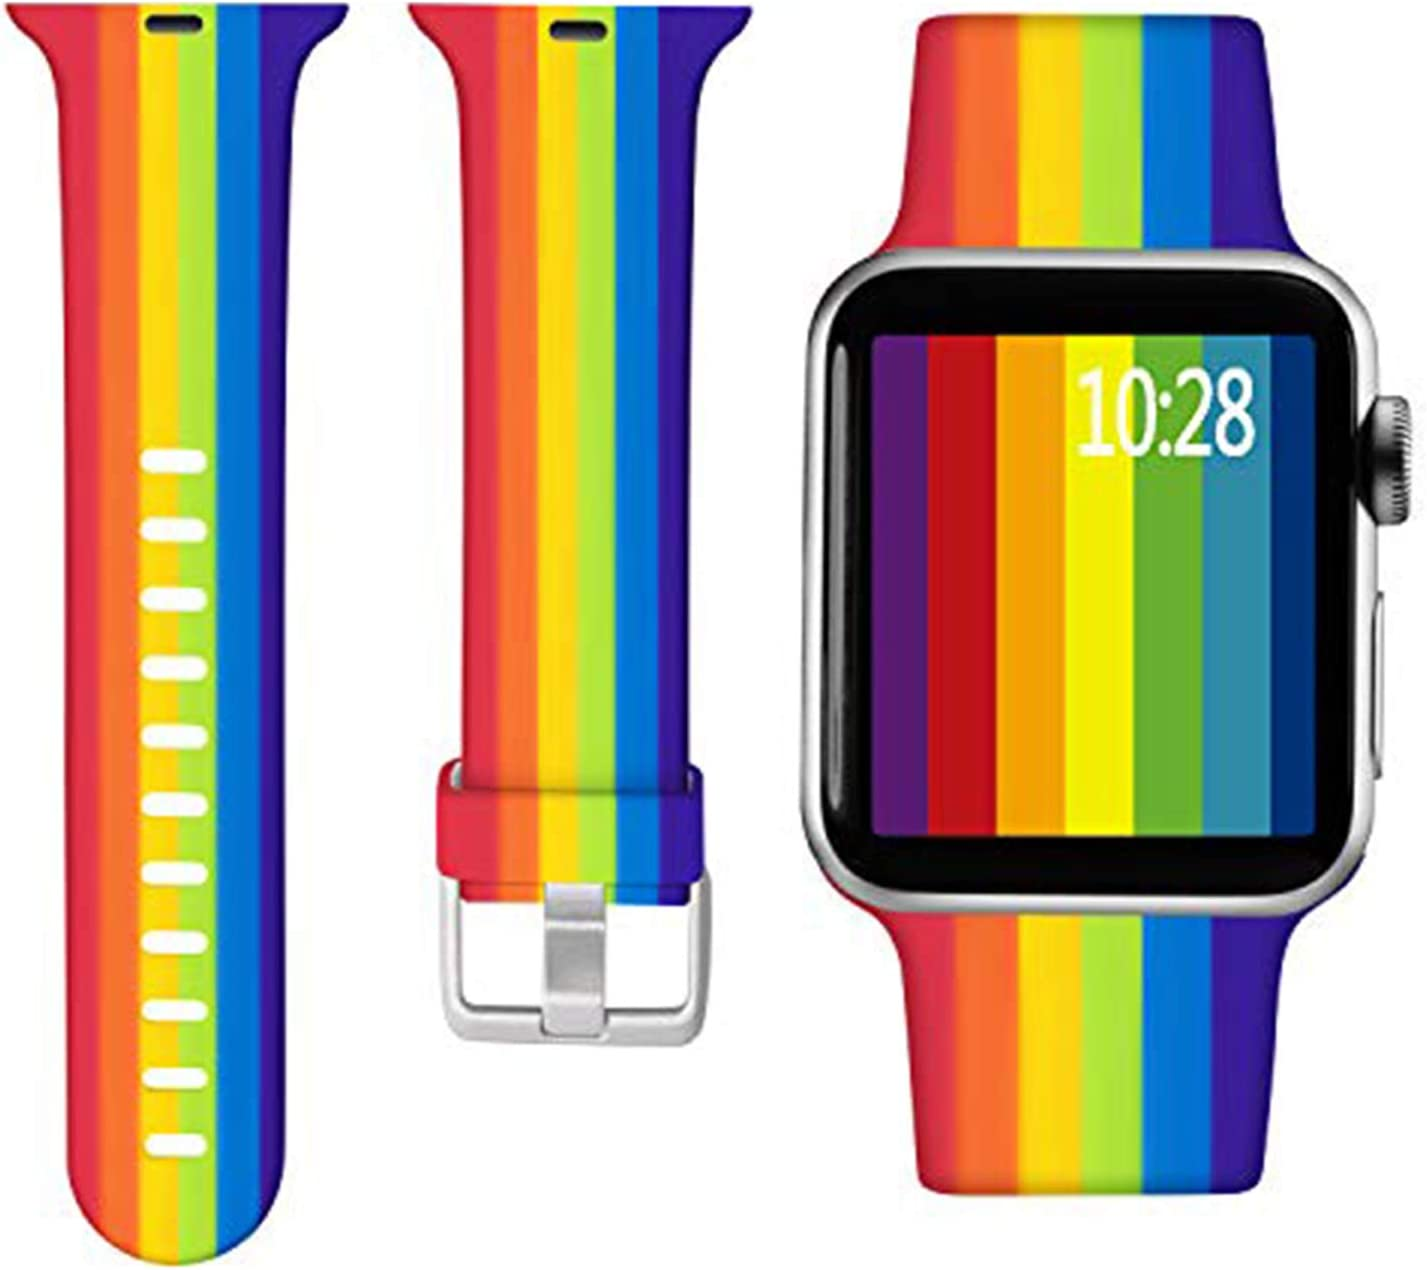 Laffav Floal Bands Compatible with Apple Watch Band 40mm 38mm iWatch SE & Series 6 & Series 5 4 3 2 1 for Women Men, Rainbow, S/M